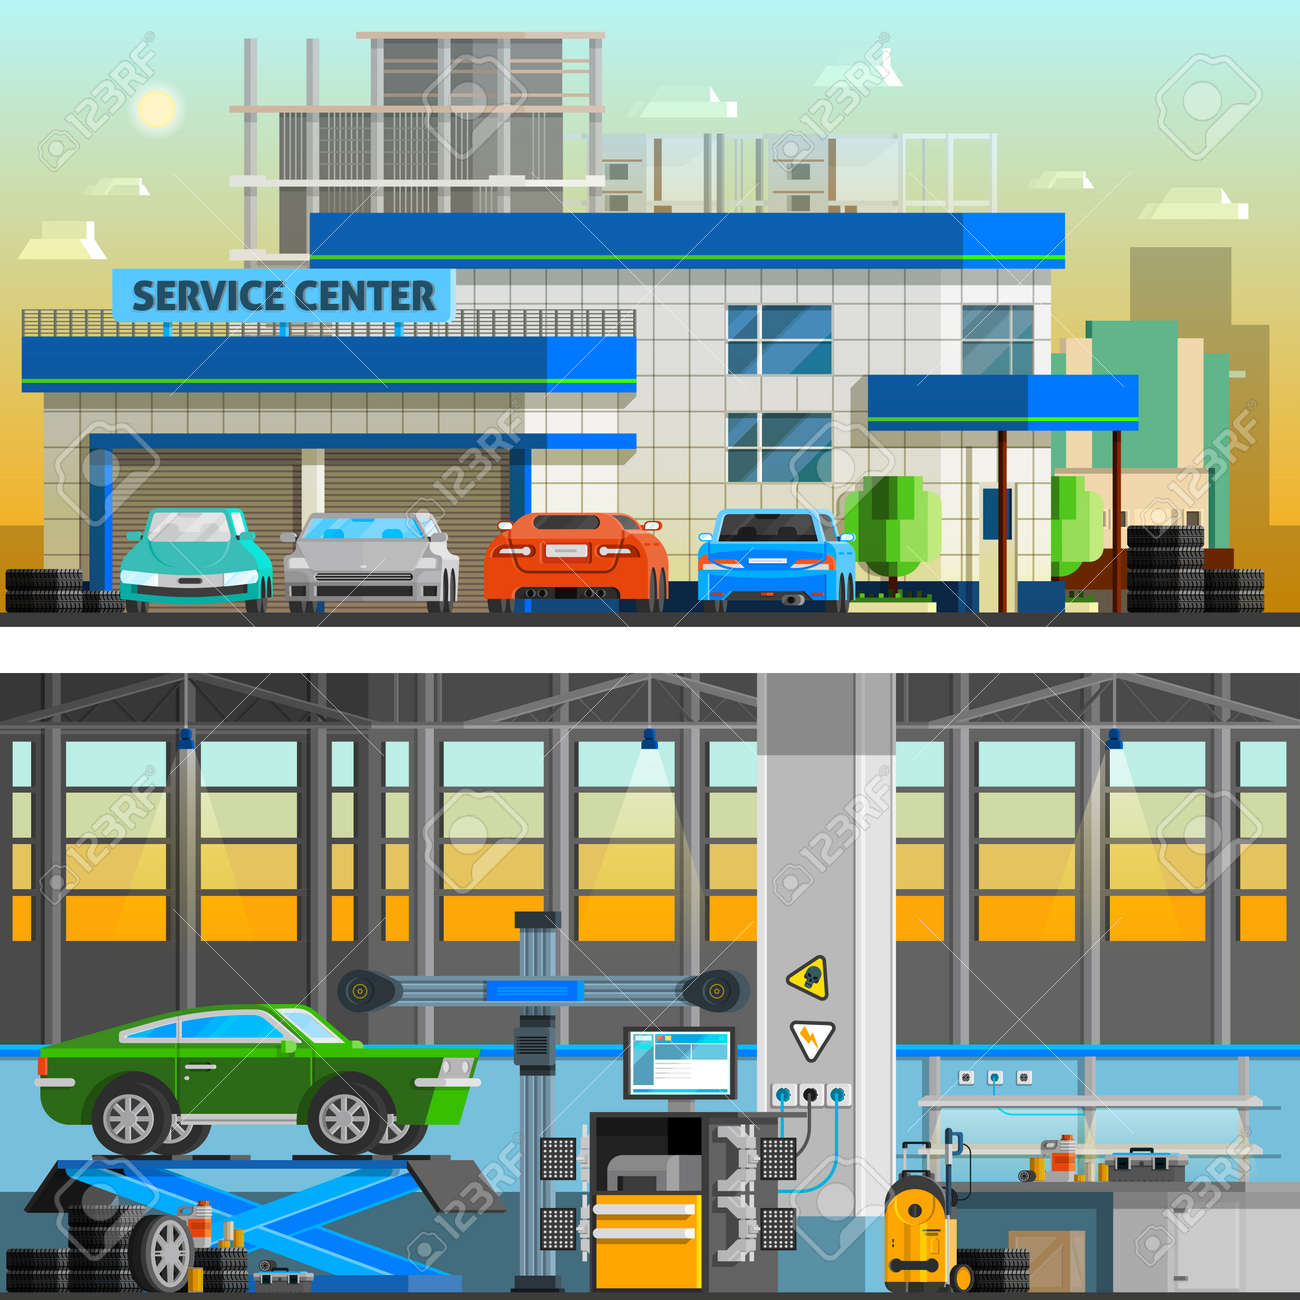 Auto service flat horizontal banners with parking near service center building and workshop indoor interior with equipment for diagnostics and repair automobiles vector illustration - 164298172